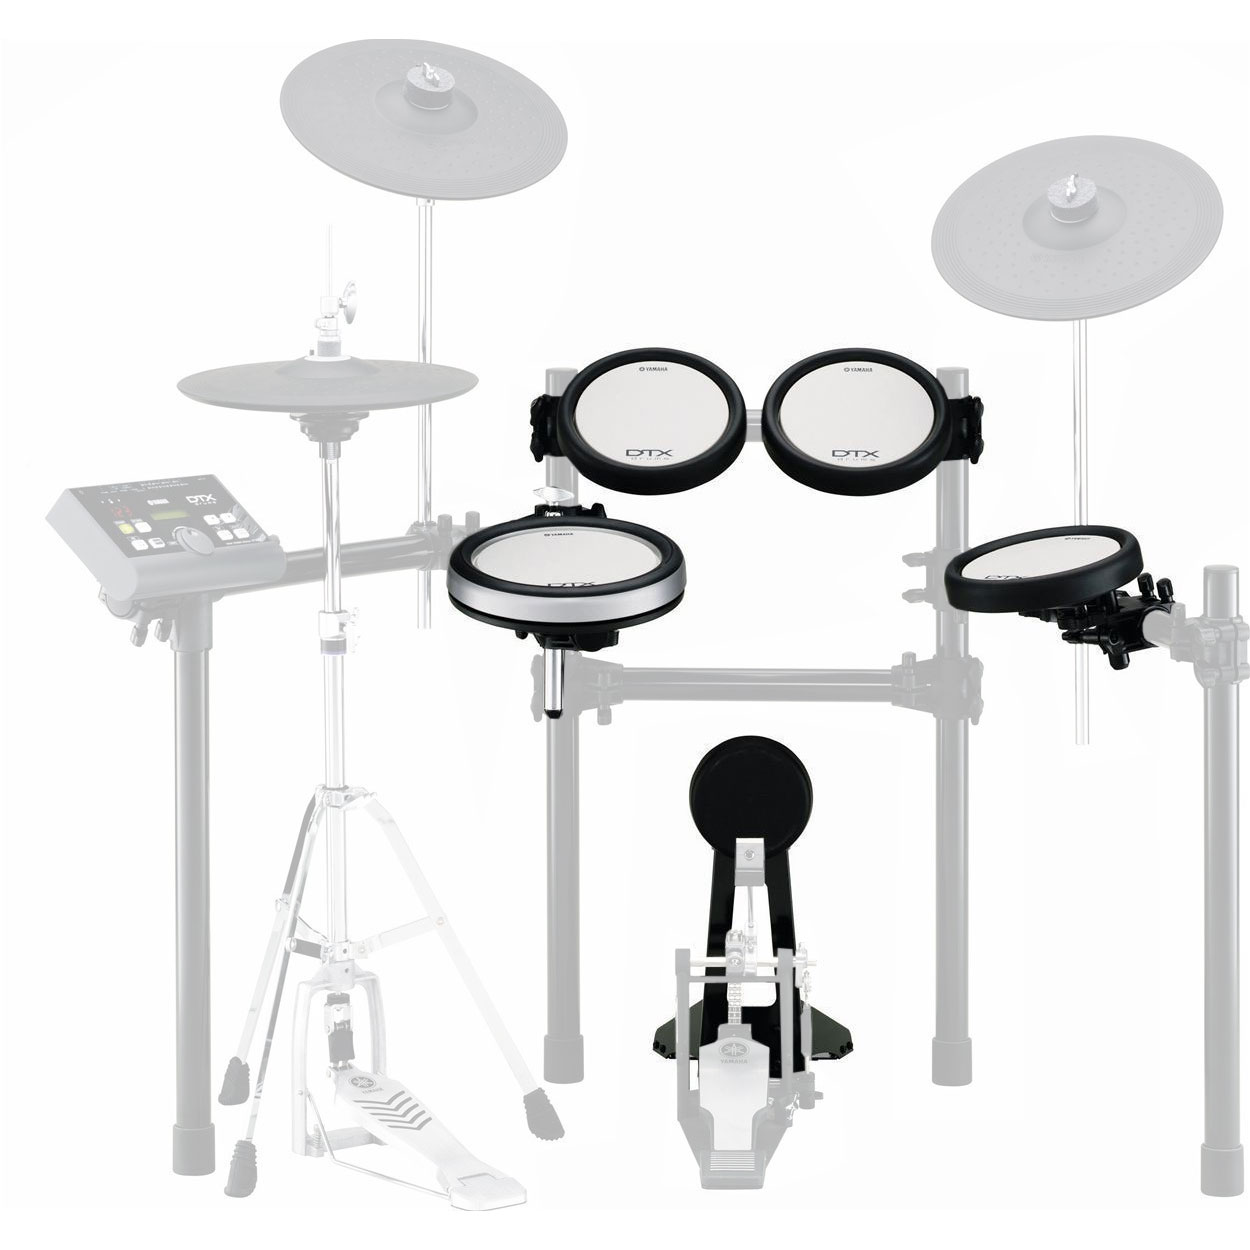 Yamaha drum pad set for dtx700k 560k electronic drum sets for Yamaha drum pads